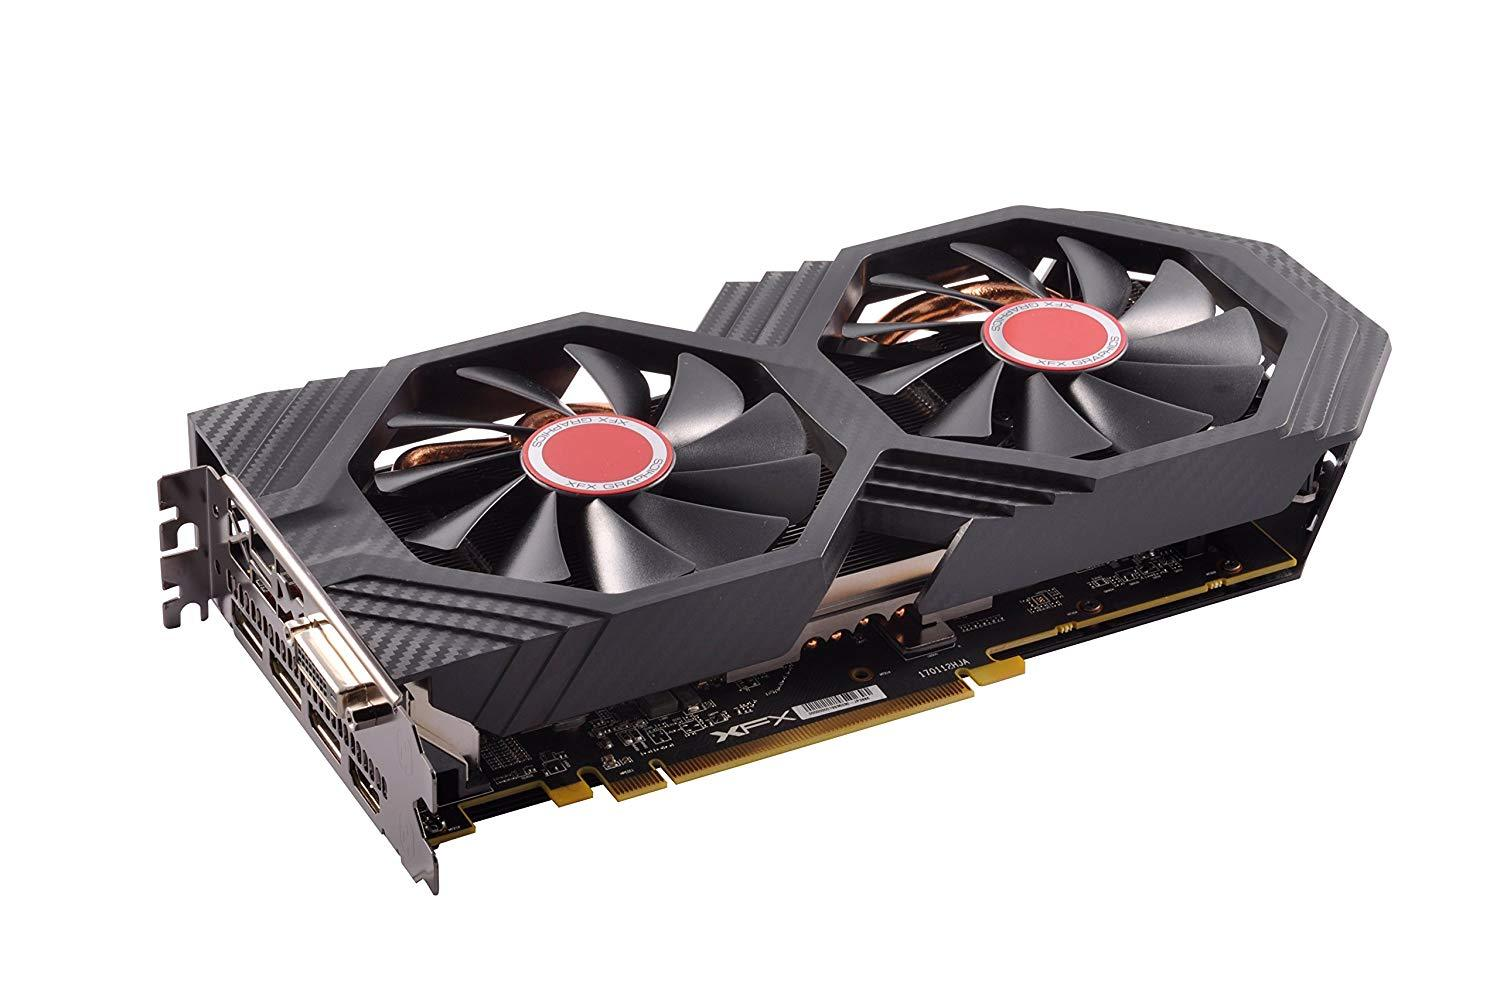 XFX Radeon RX 580 6GB GDDR5 PCI-E Gen 3x4 - Graphics Card - Black Edition